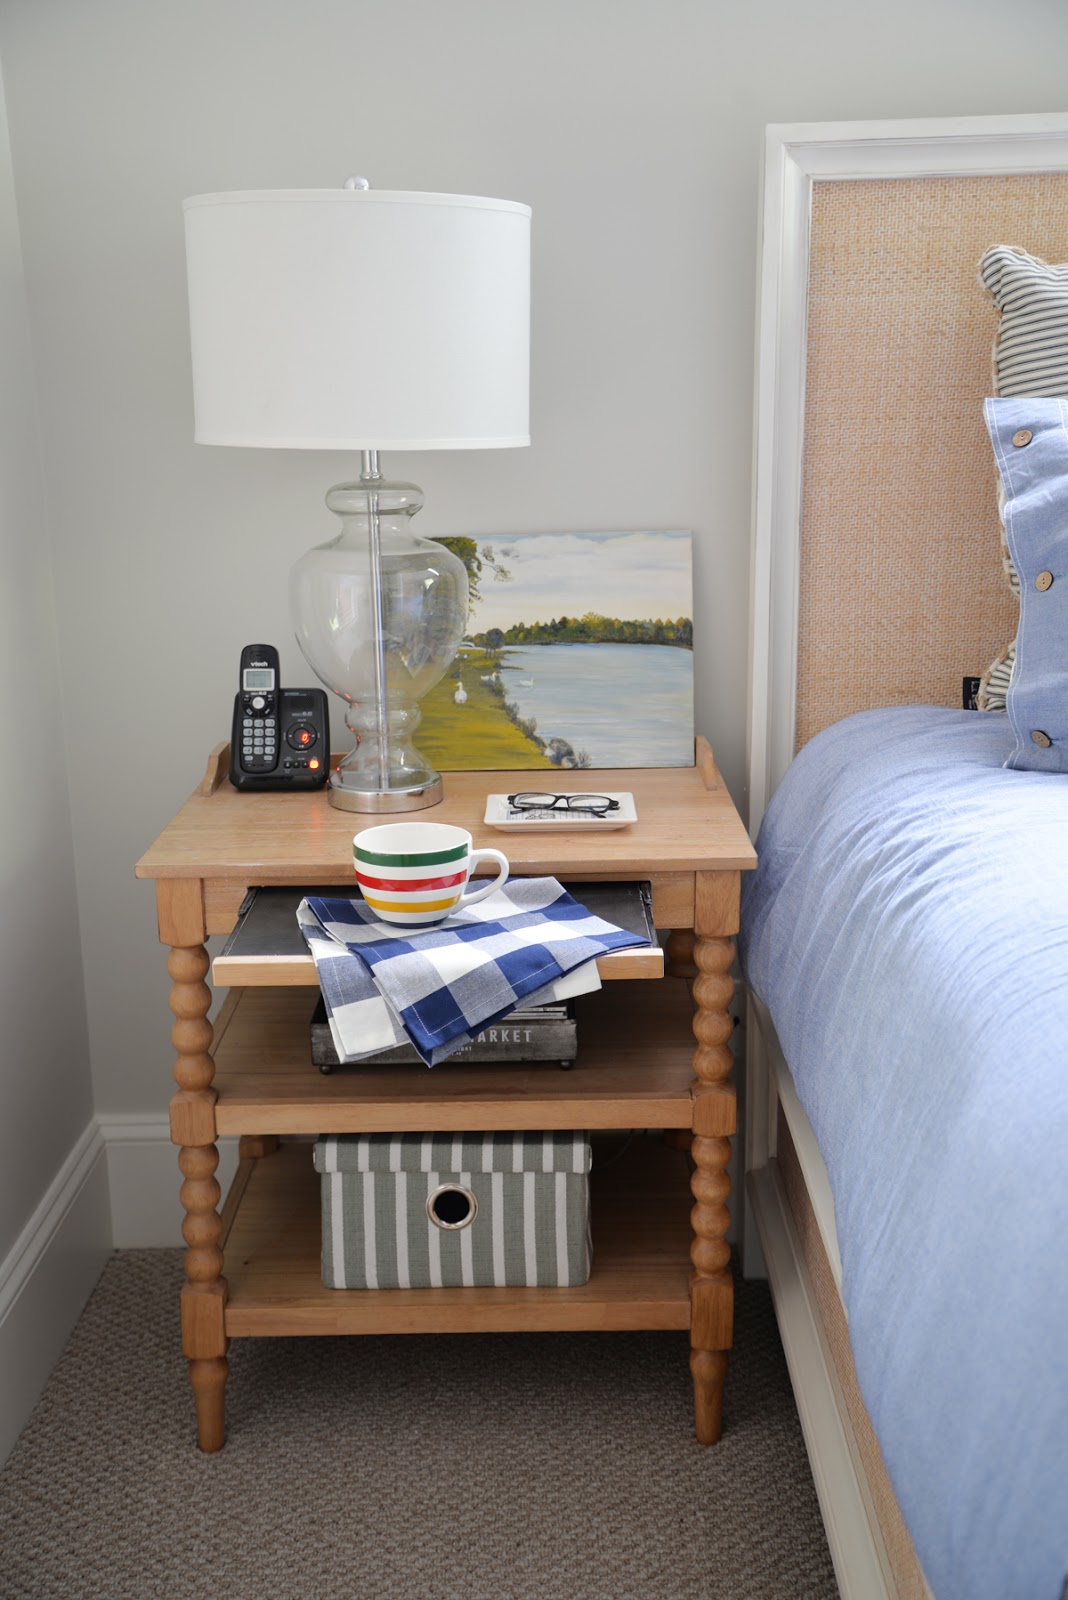 spool nightstand, rattan headboard, country cottage bedroom | Ramblingrenovators.ca